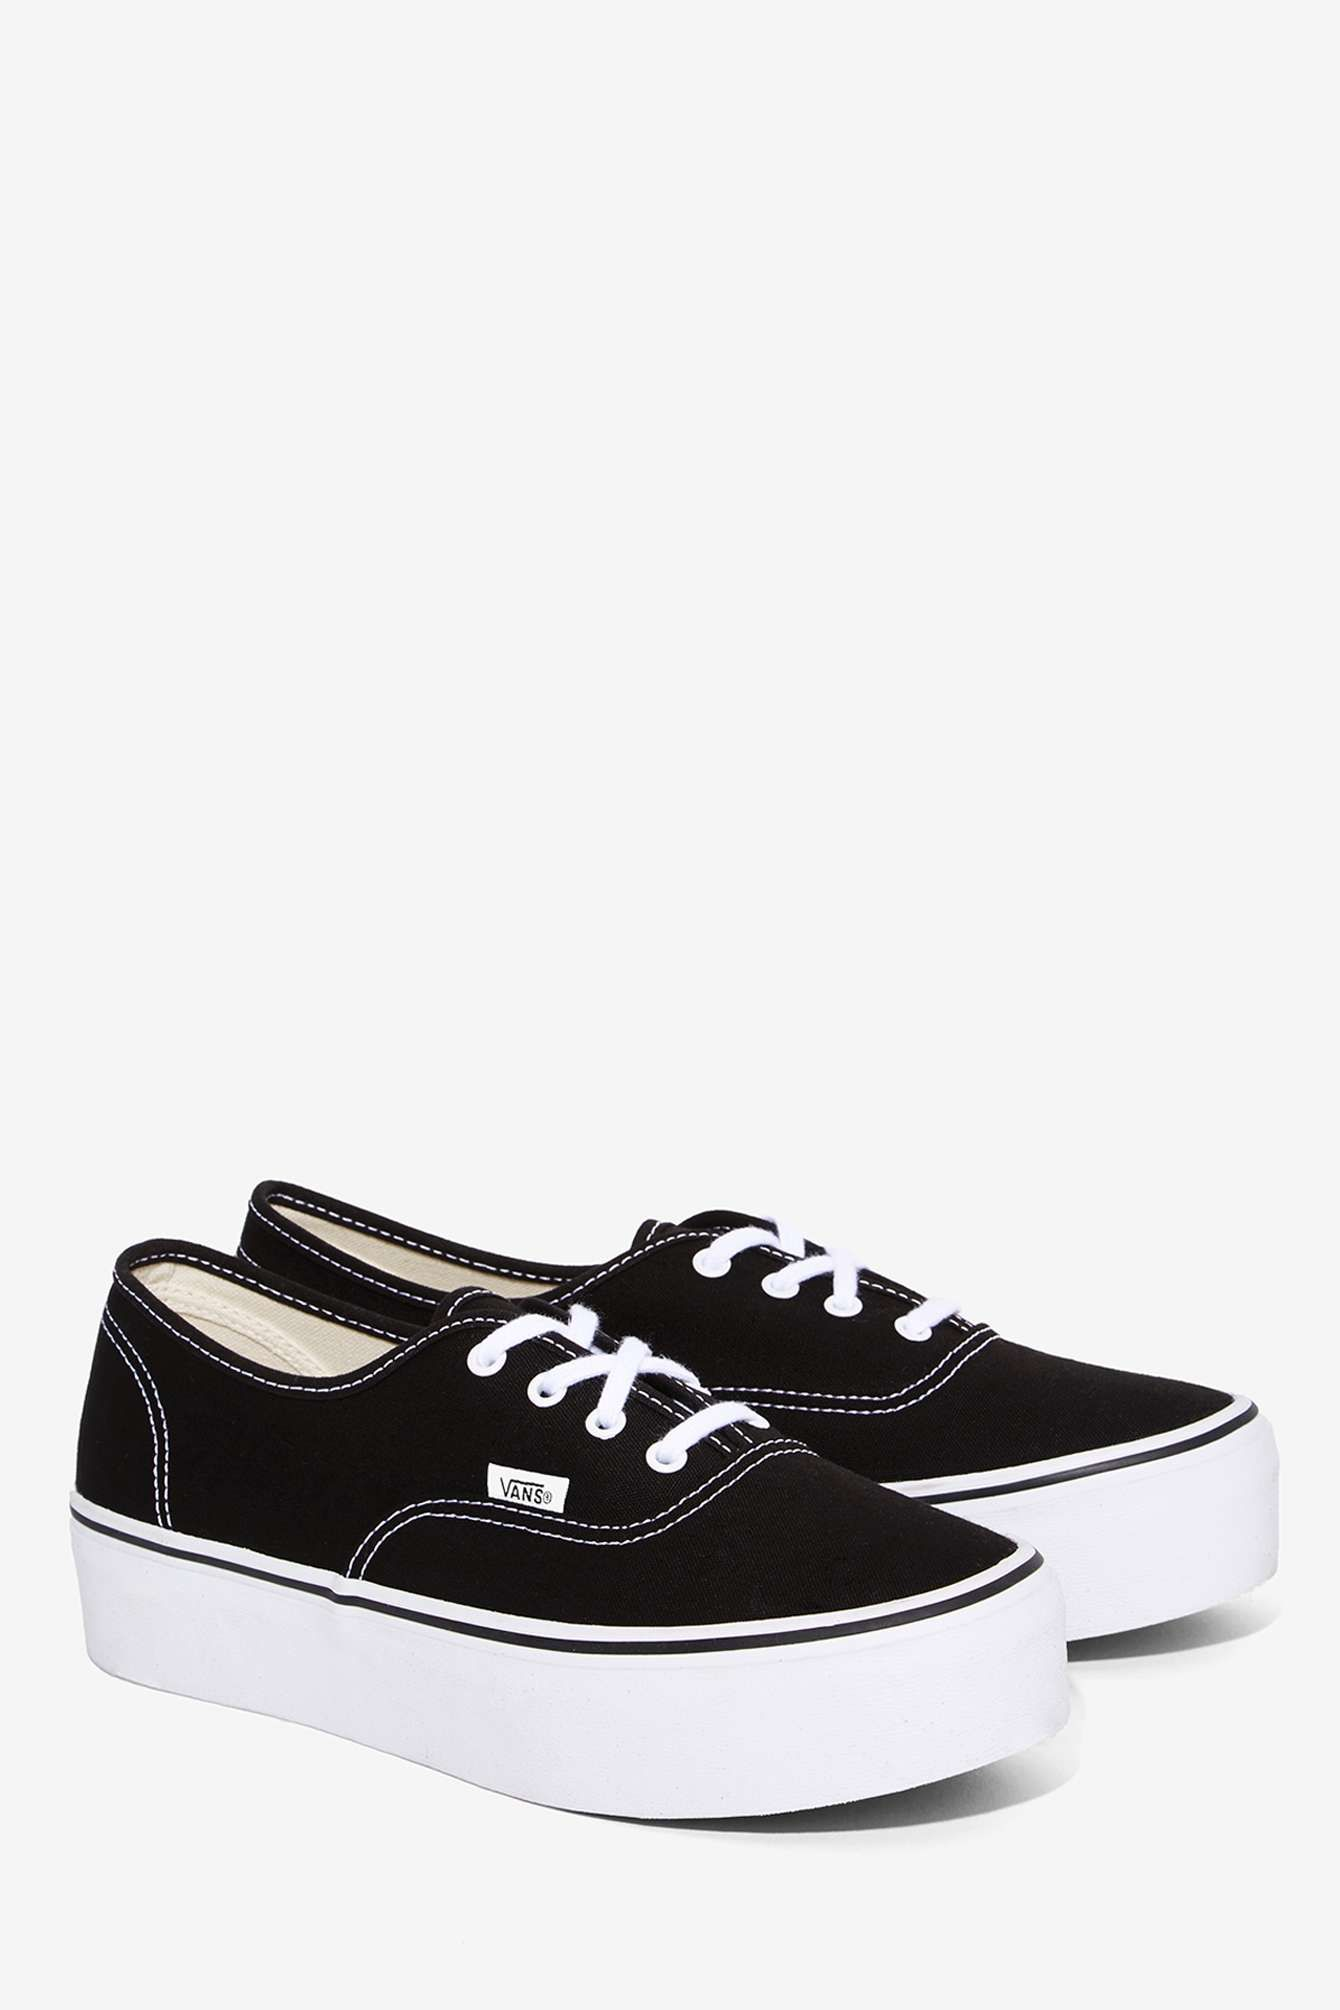 b455048a20a1de Vans Authentic Platform Sneaker - Black